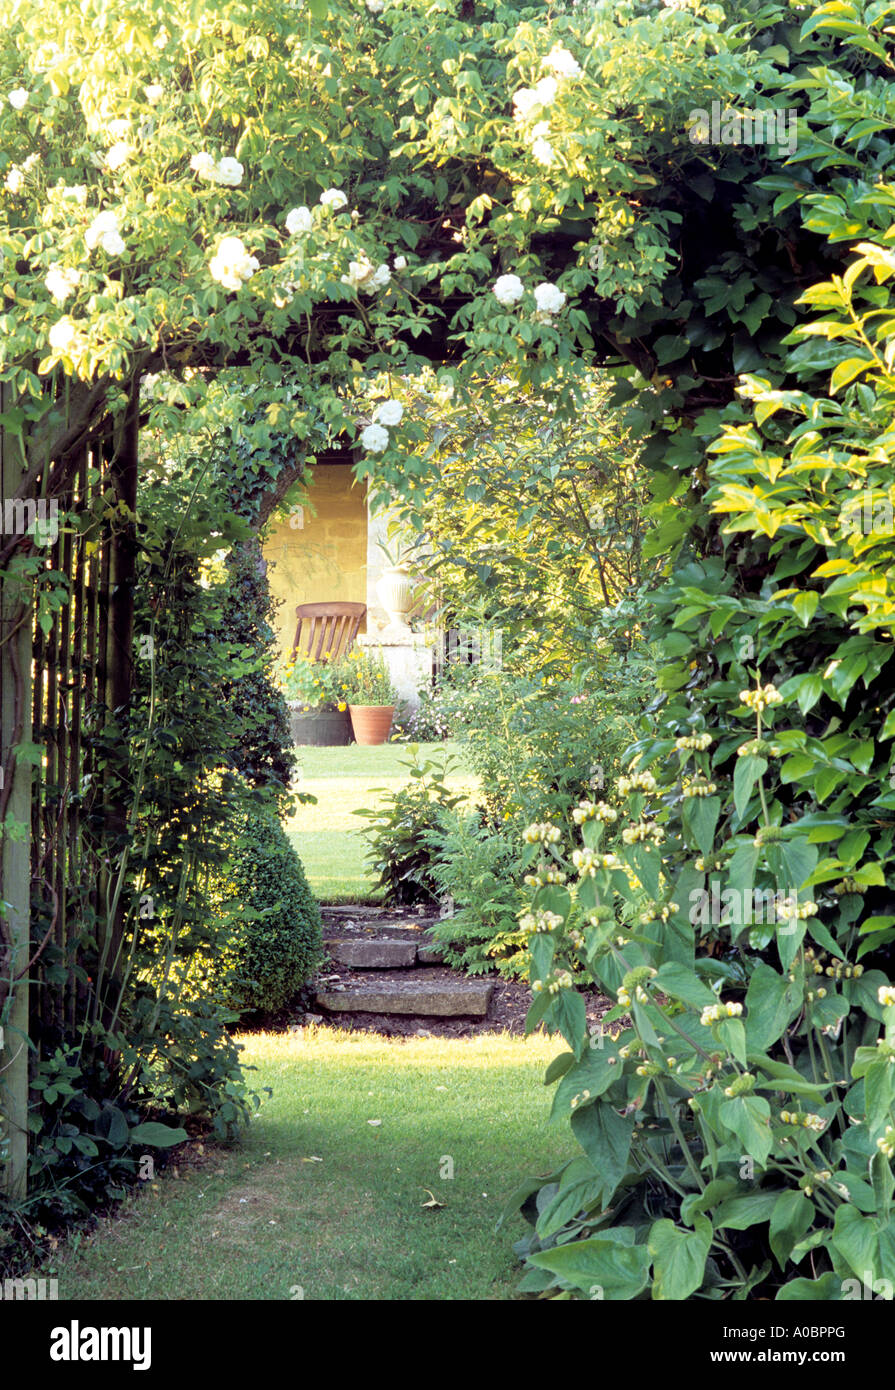 Trellis Arbor With Climbing Roses In English Country Garden